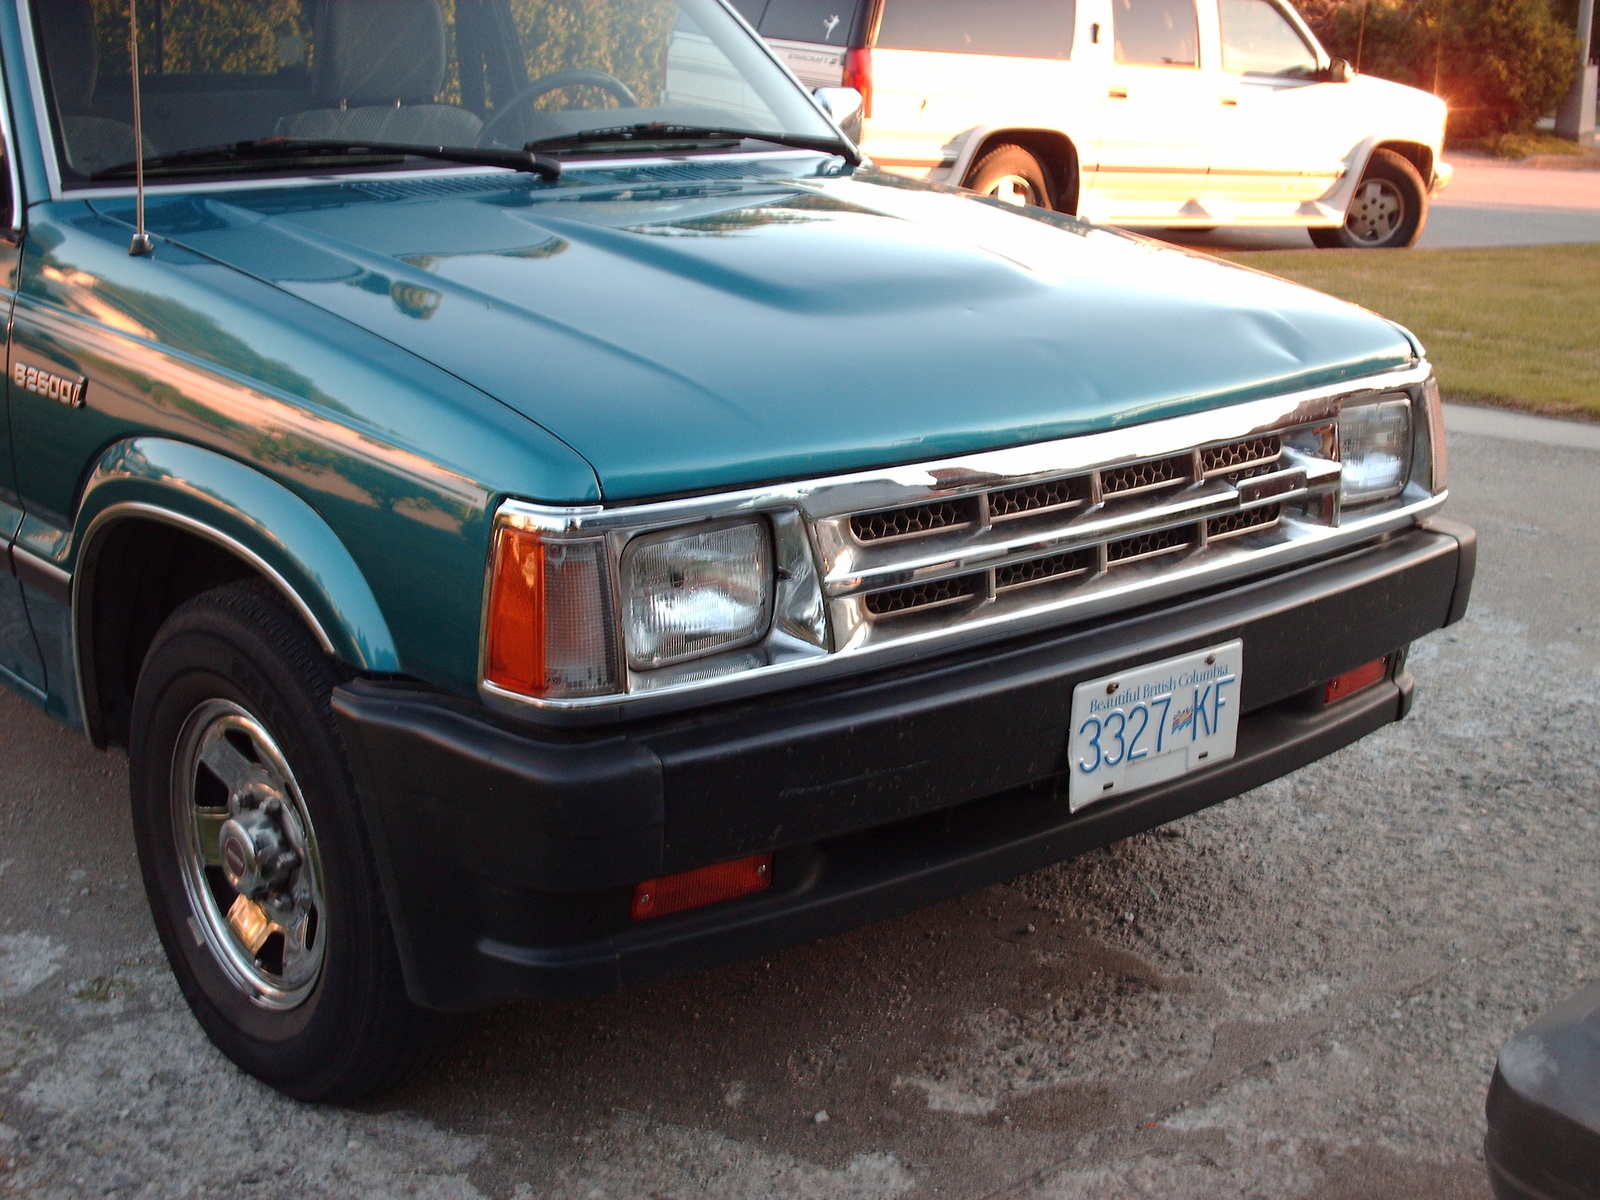 2600 Mazda Fuse Box Location Auto Electrical Wiring Diagram On A 1993 90 Ford Ranger